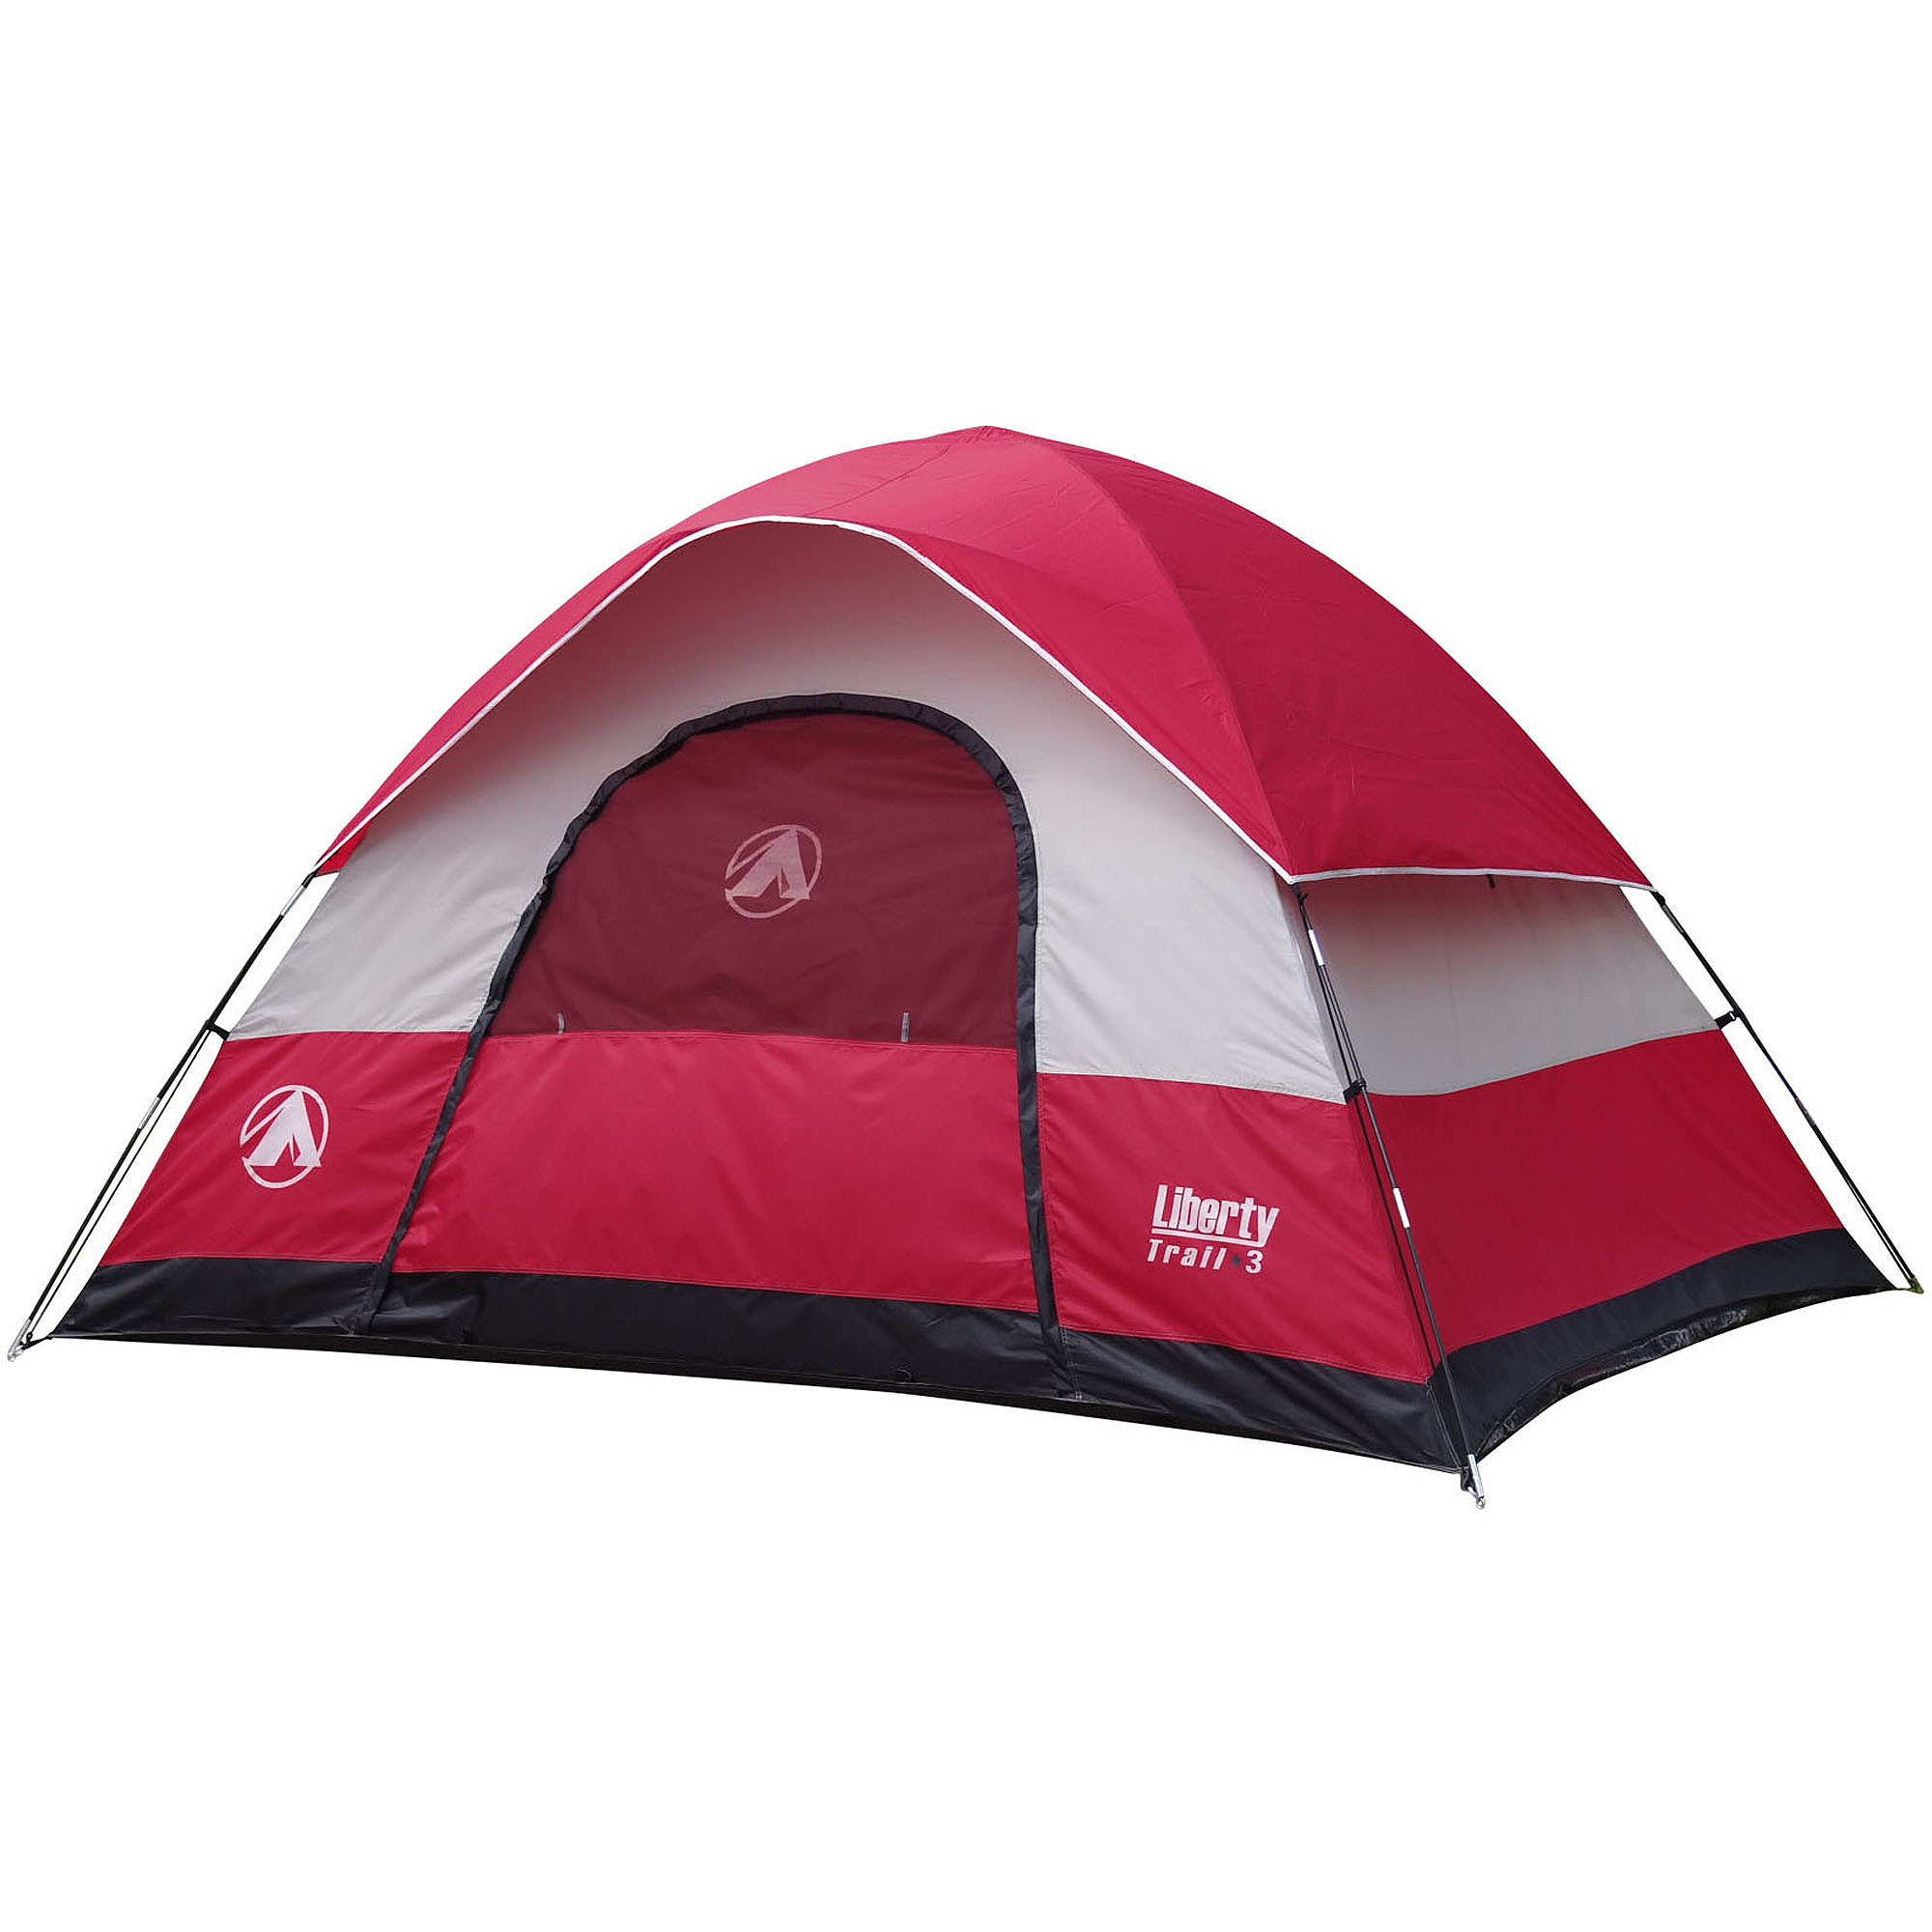 GigaTent Liberty Trail 3 8' x 10' Dome Tent, Sleeps 5